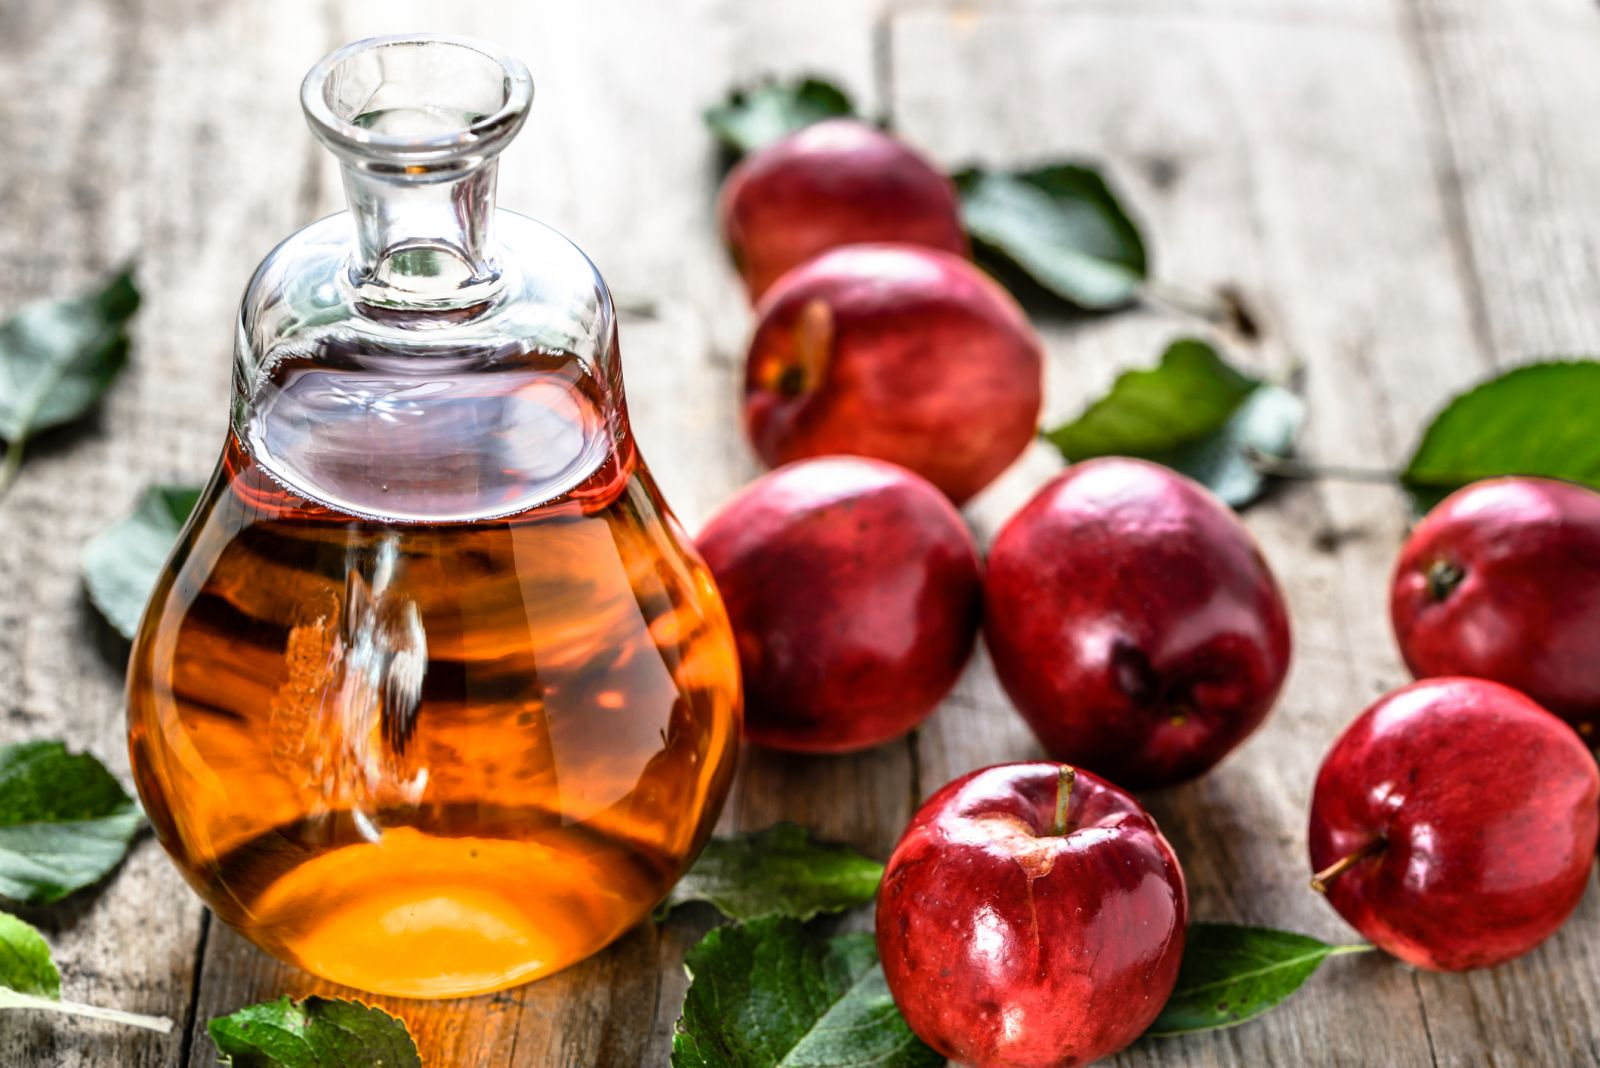 Ask the doctor: Is vinegar good for the arteries? - Harvard